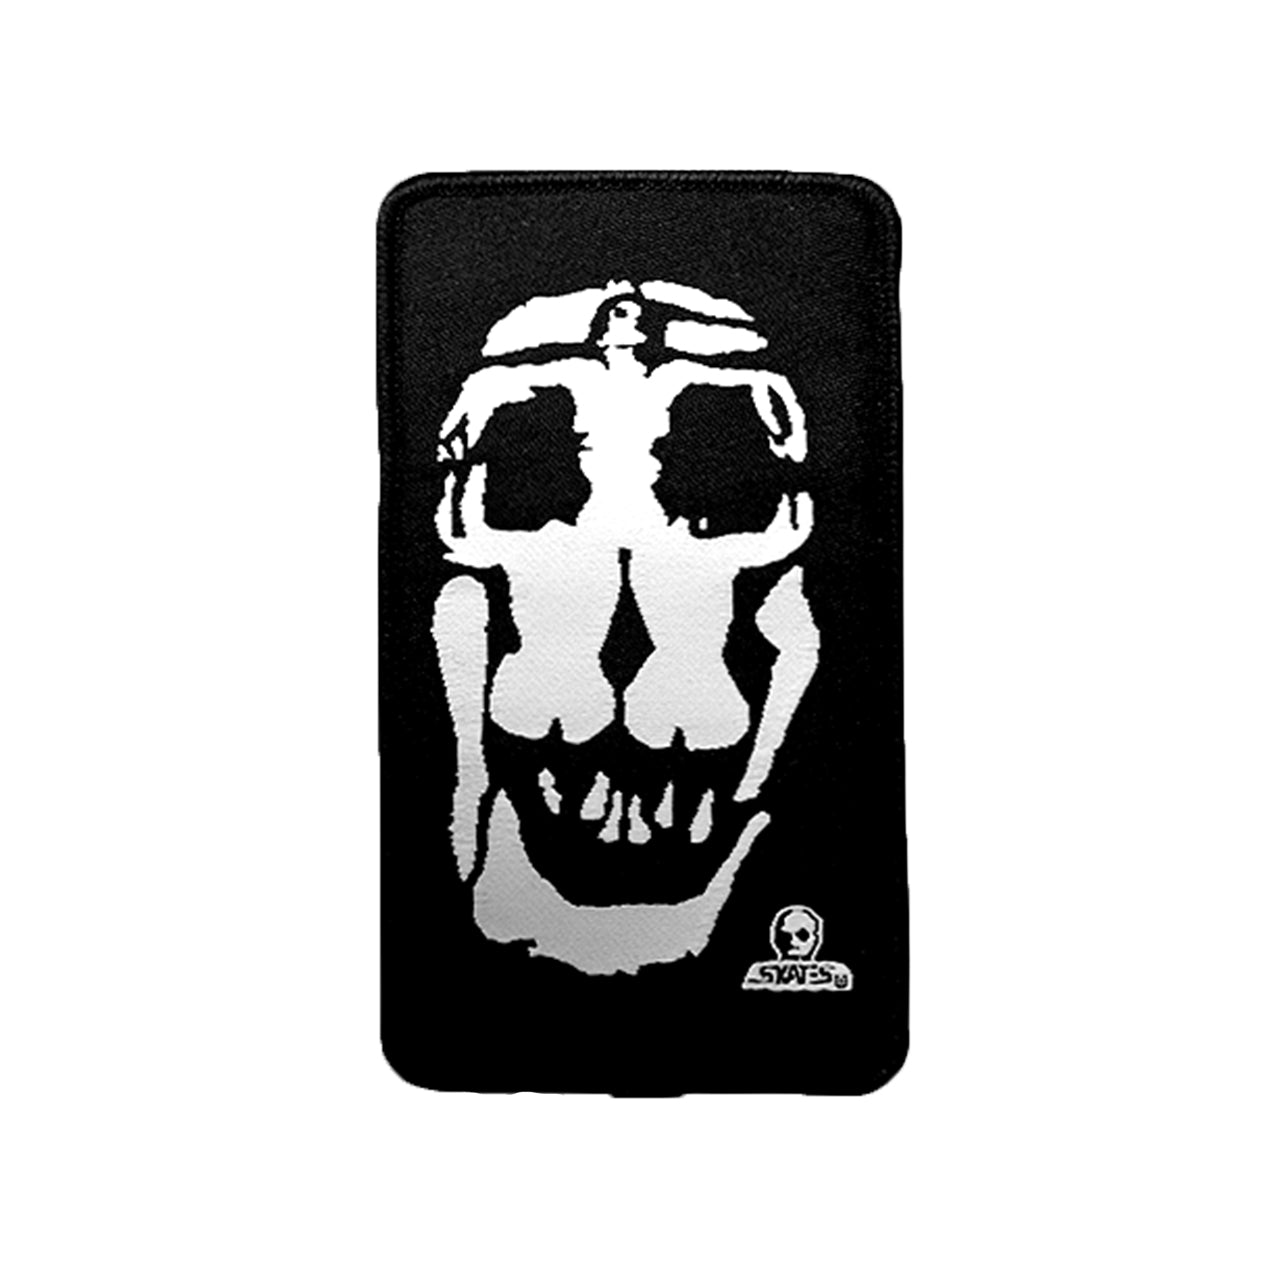 Skull Skates - Lady Skull Patch